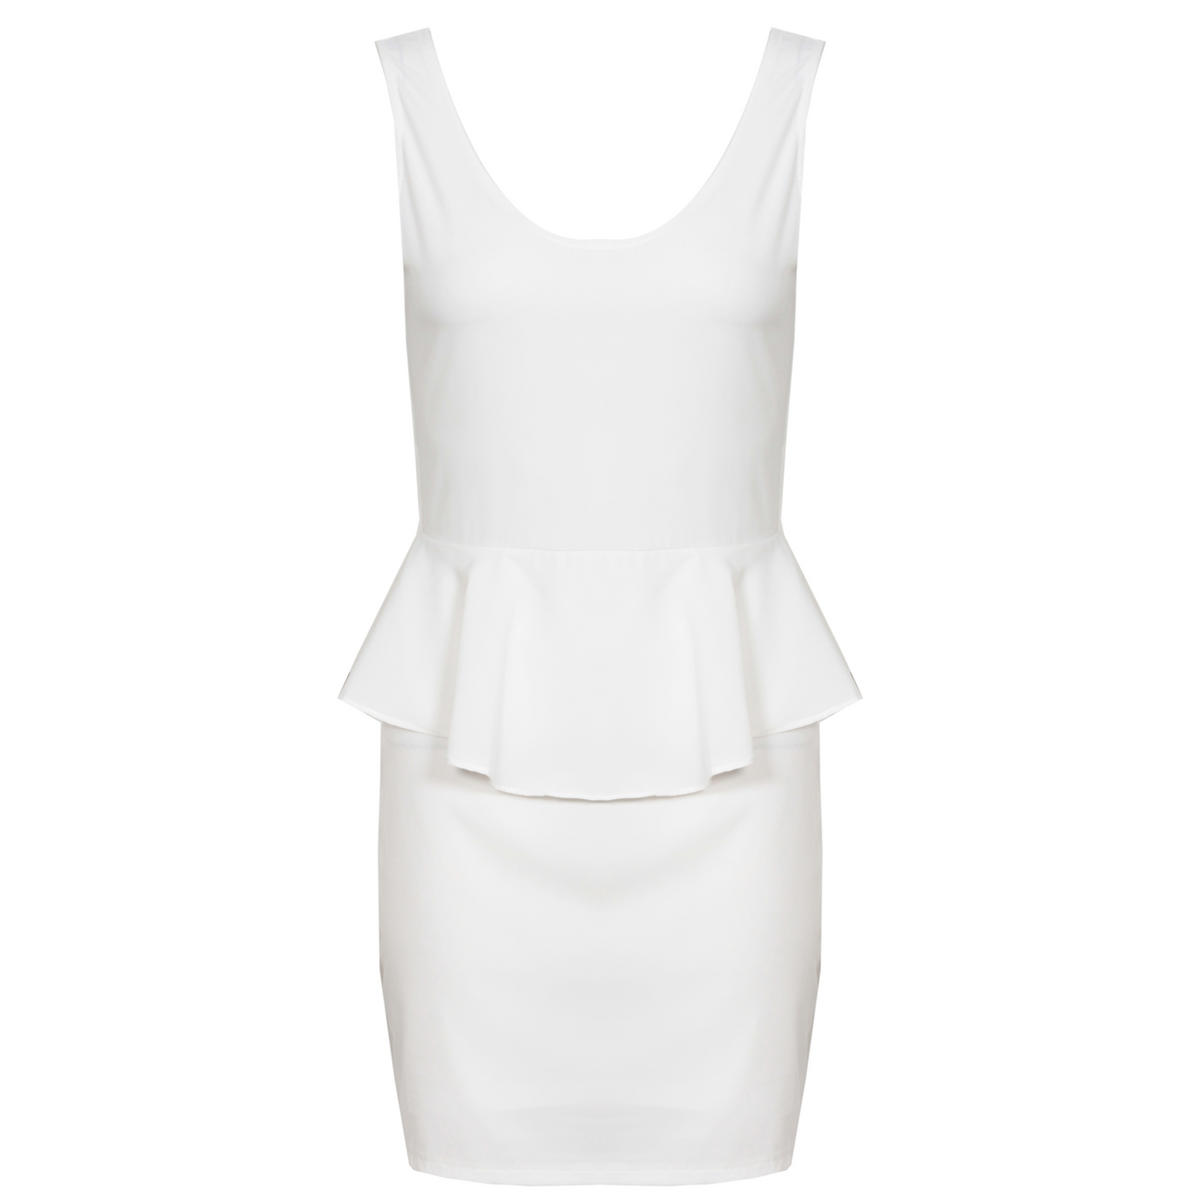 White Peplum Dress With Cut Out Back Preview